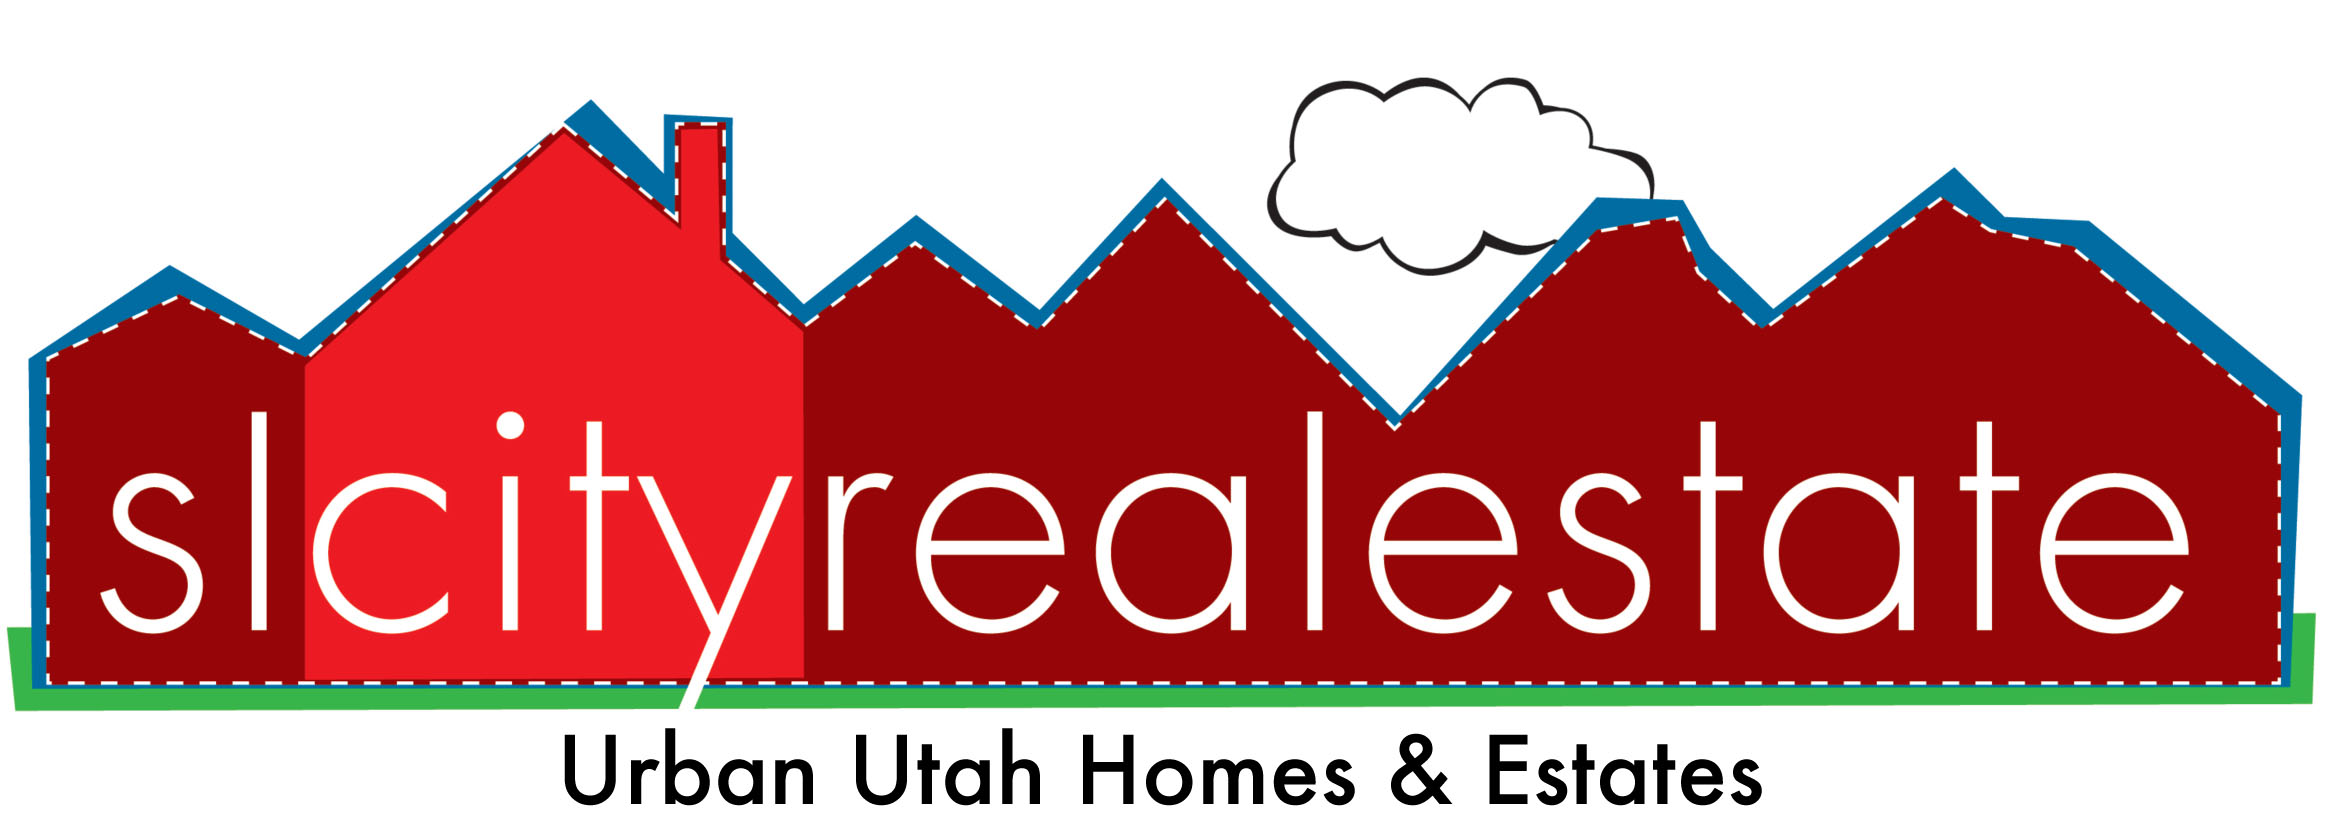 Urban Utah Homes Estates